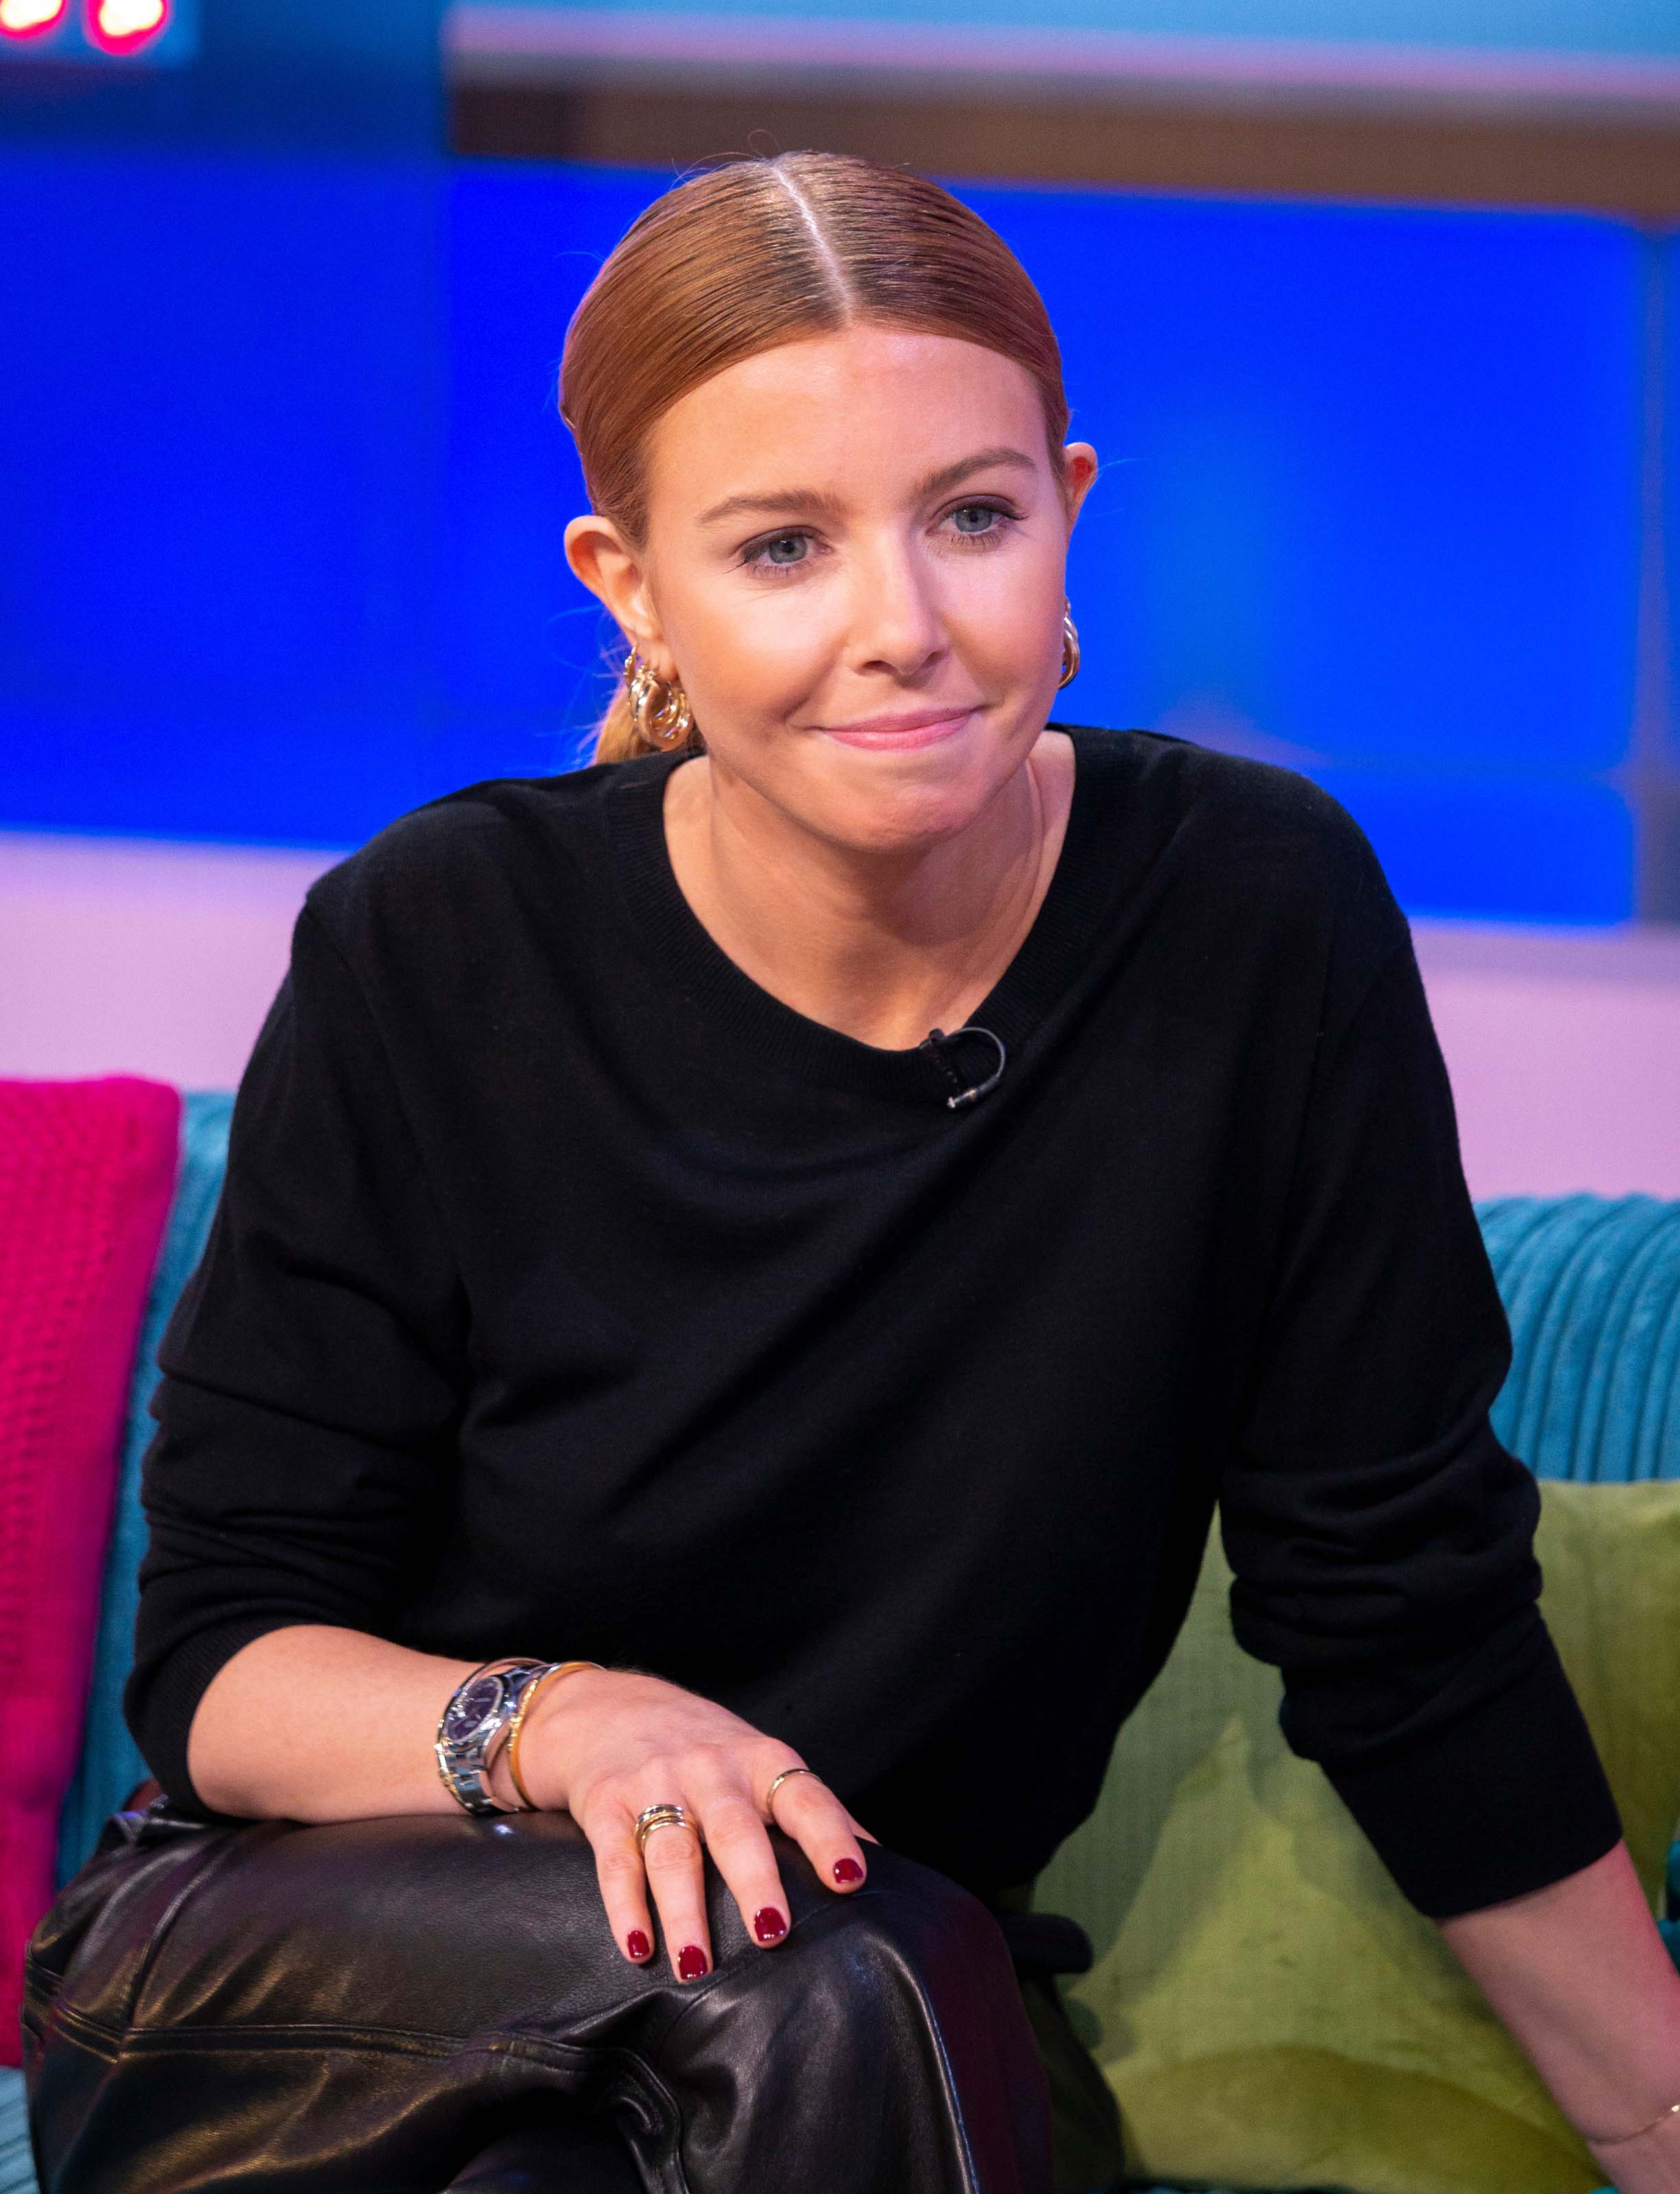 Stacey Dooley seen at Sunday Brunch TV show